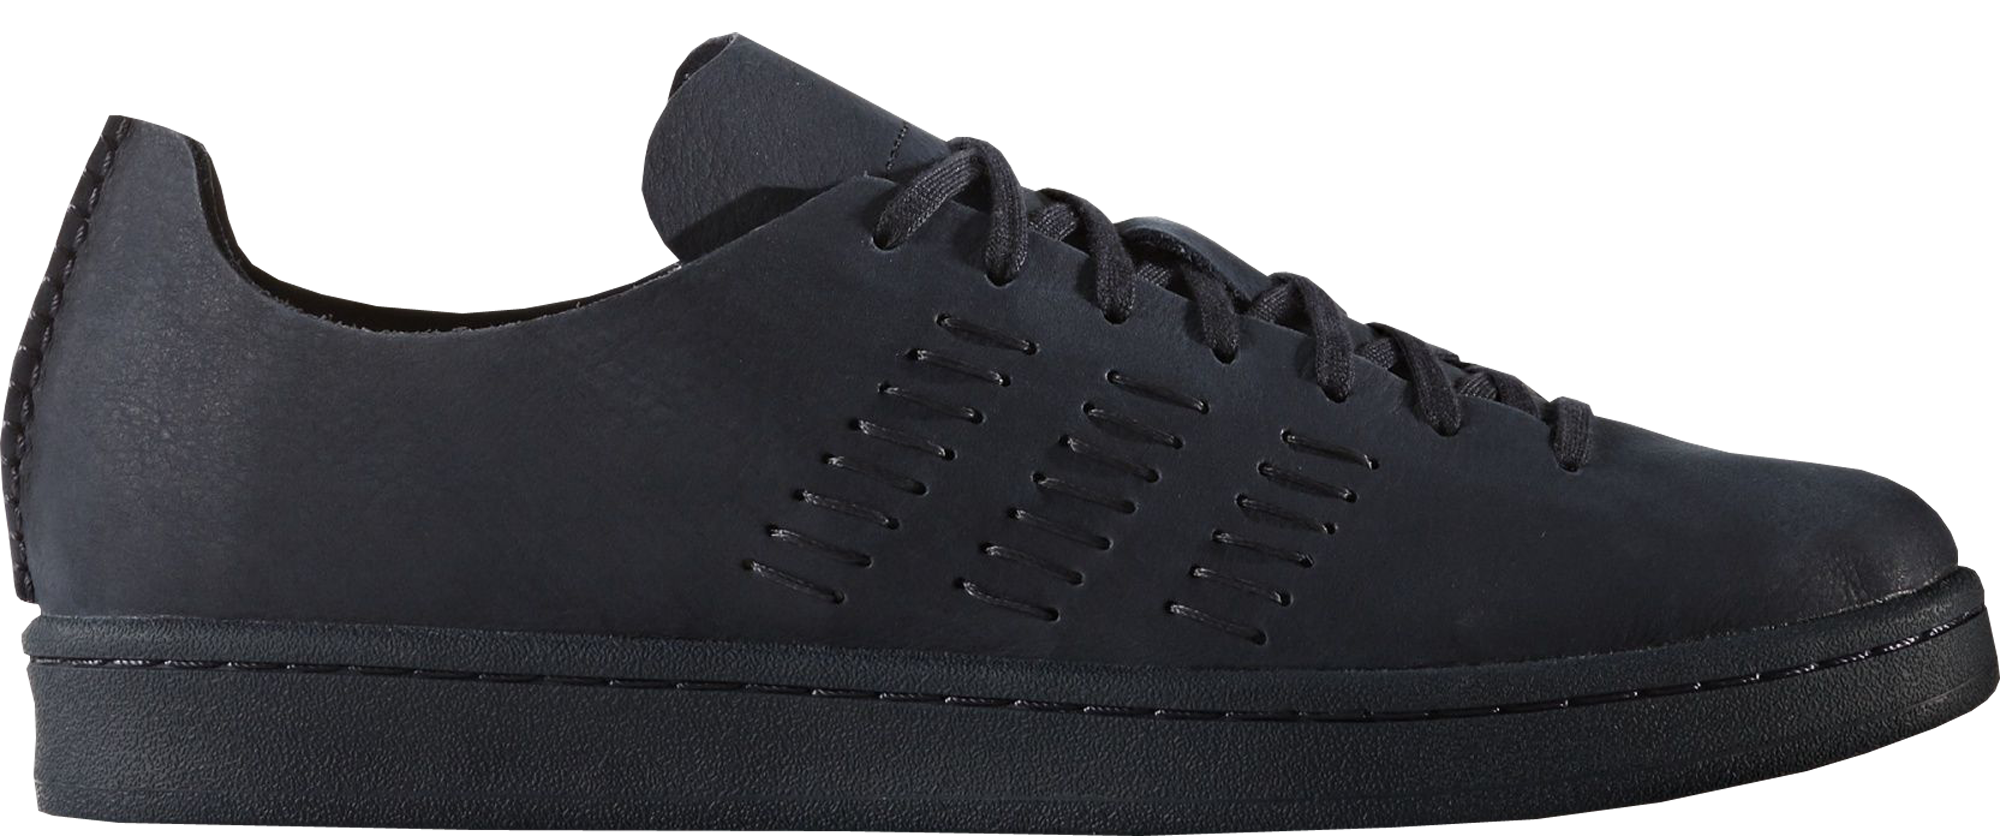 on sale 47b11 0794f Wings+Horns x adidas Campus Night Navy